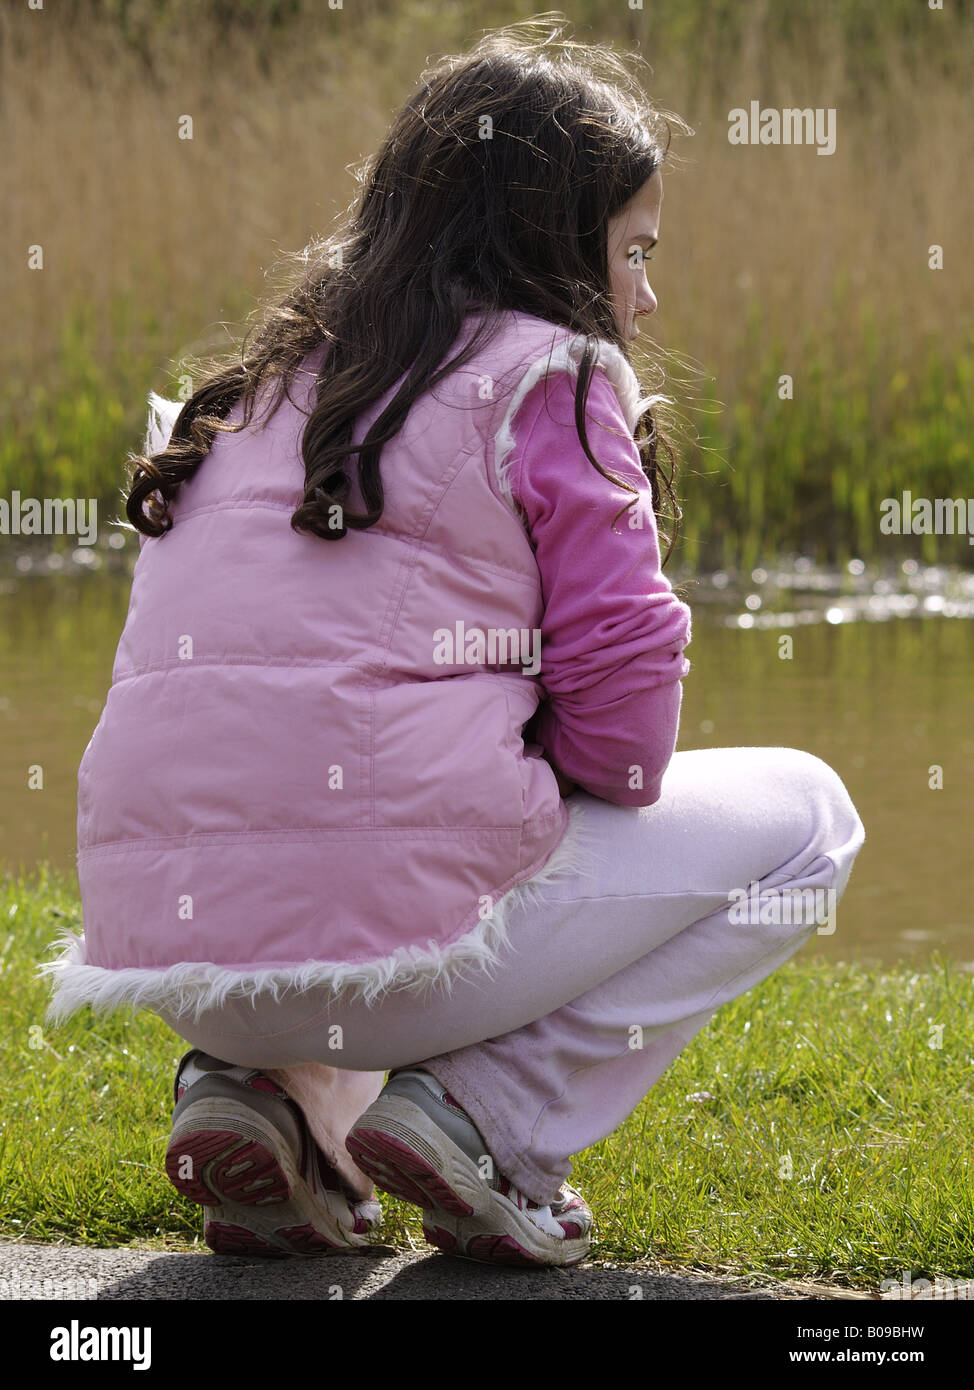 Young girl crouched down beside the river bank looking onto the water. - Stock Image